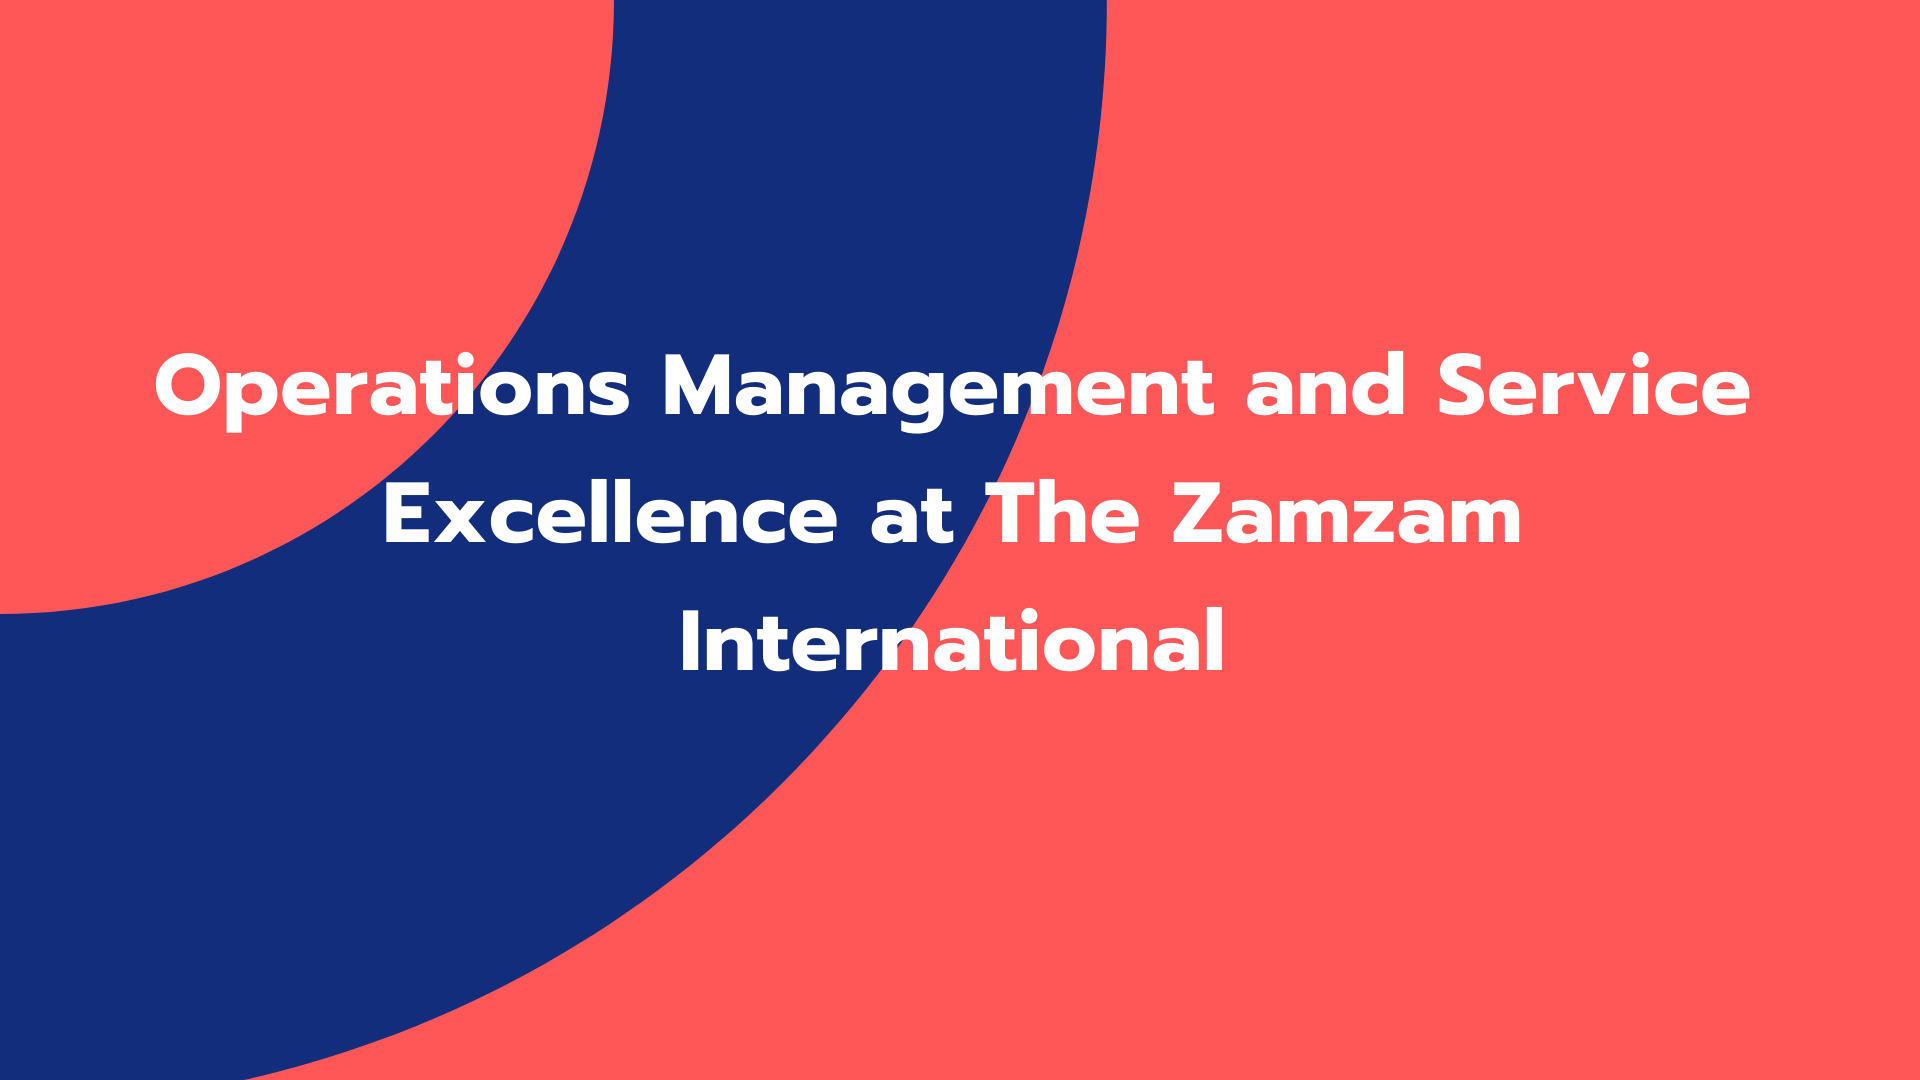 Operations Management and Service Excellence at the Zamzam International